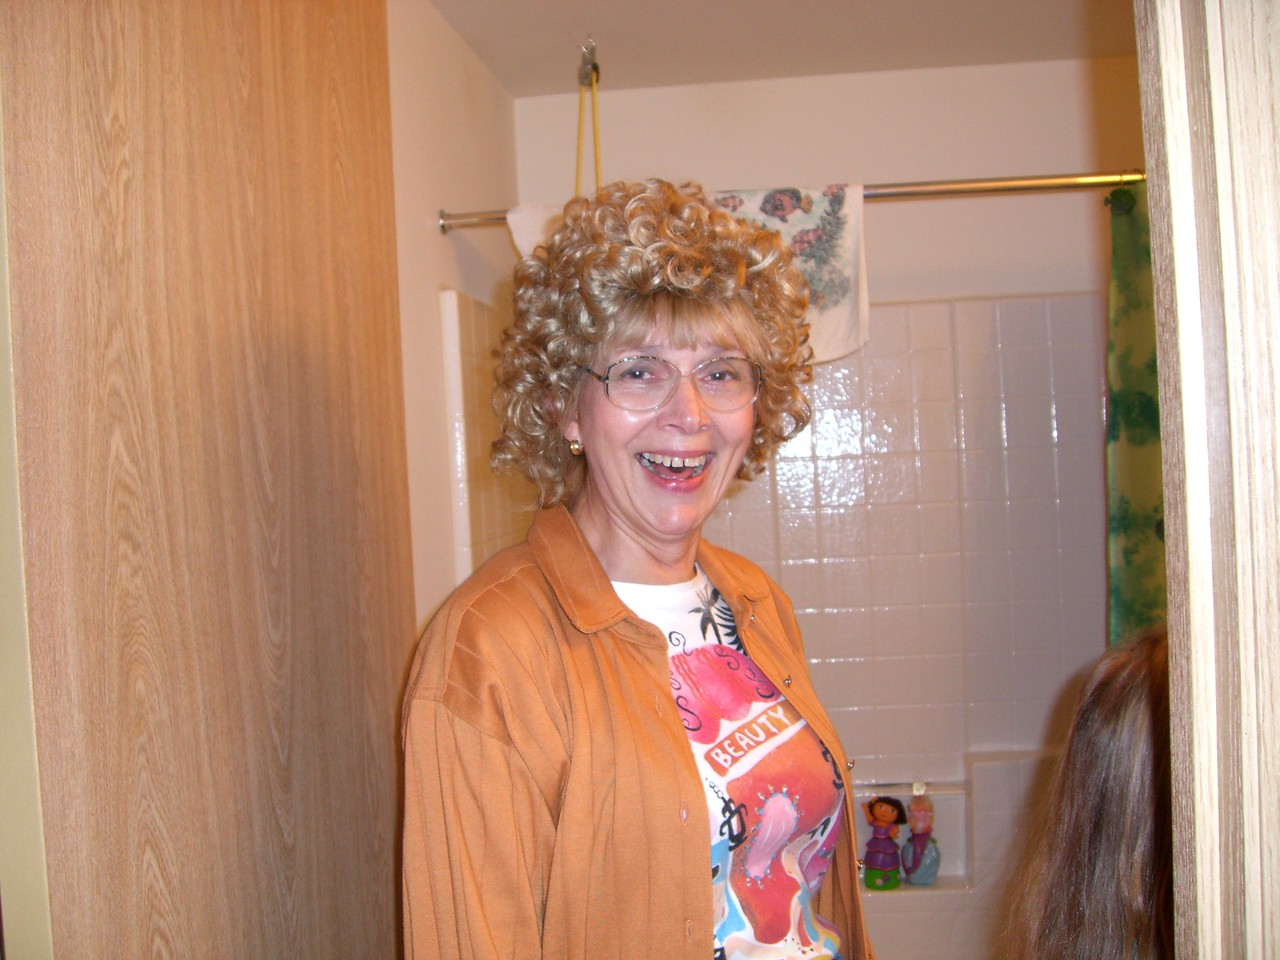 Mom models the wig.